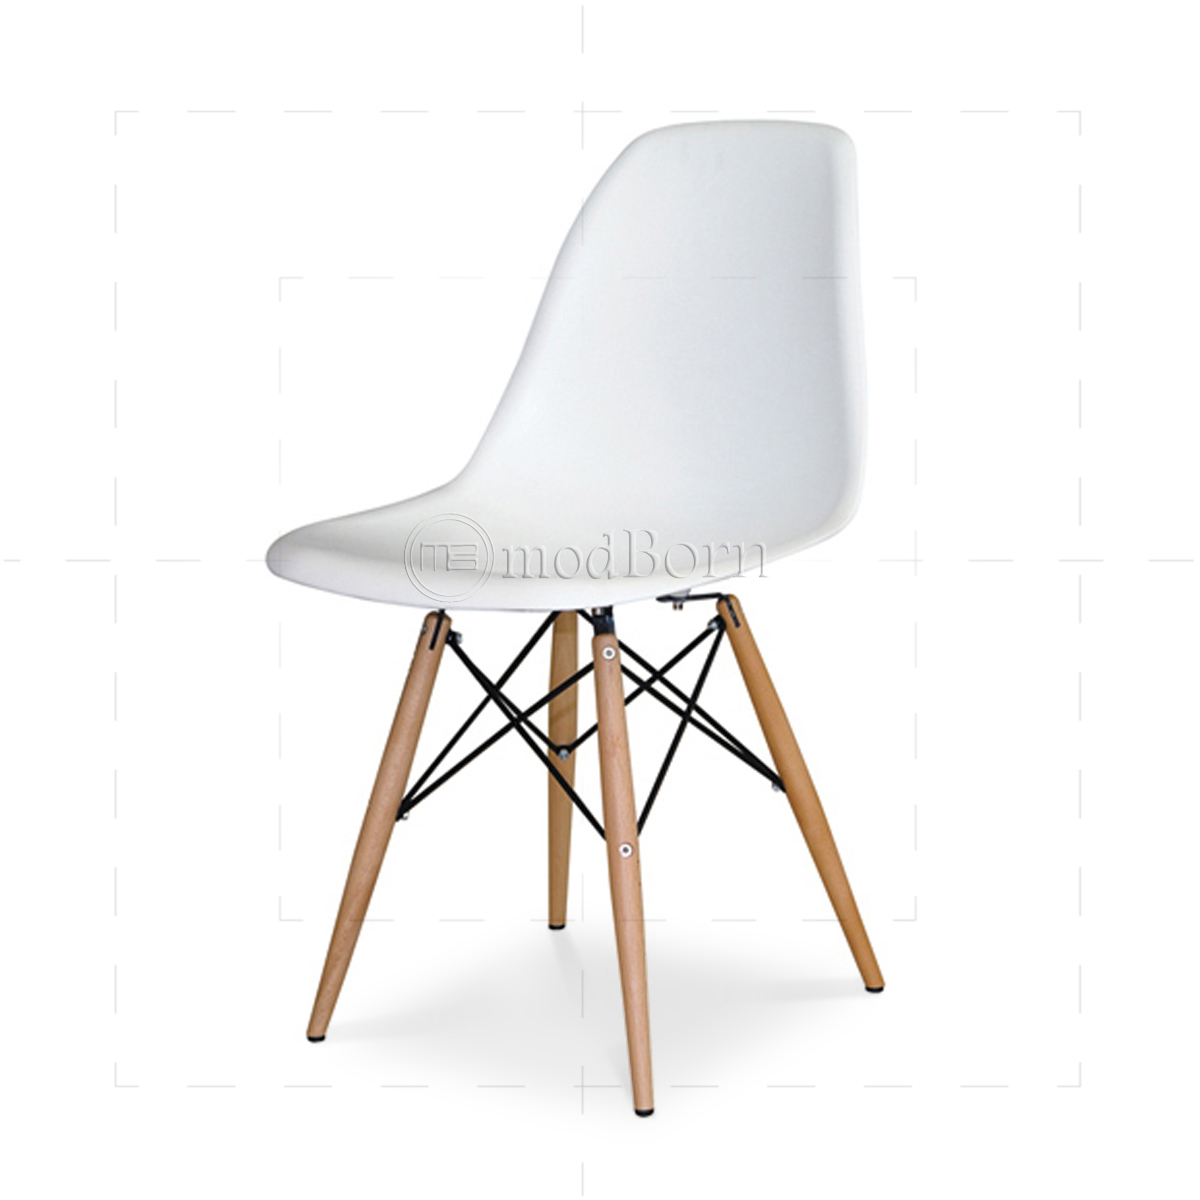 Eames style dining dsw chair white replica for Eames dsw replica